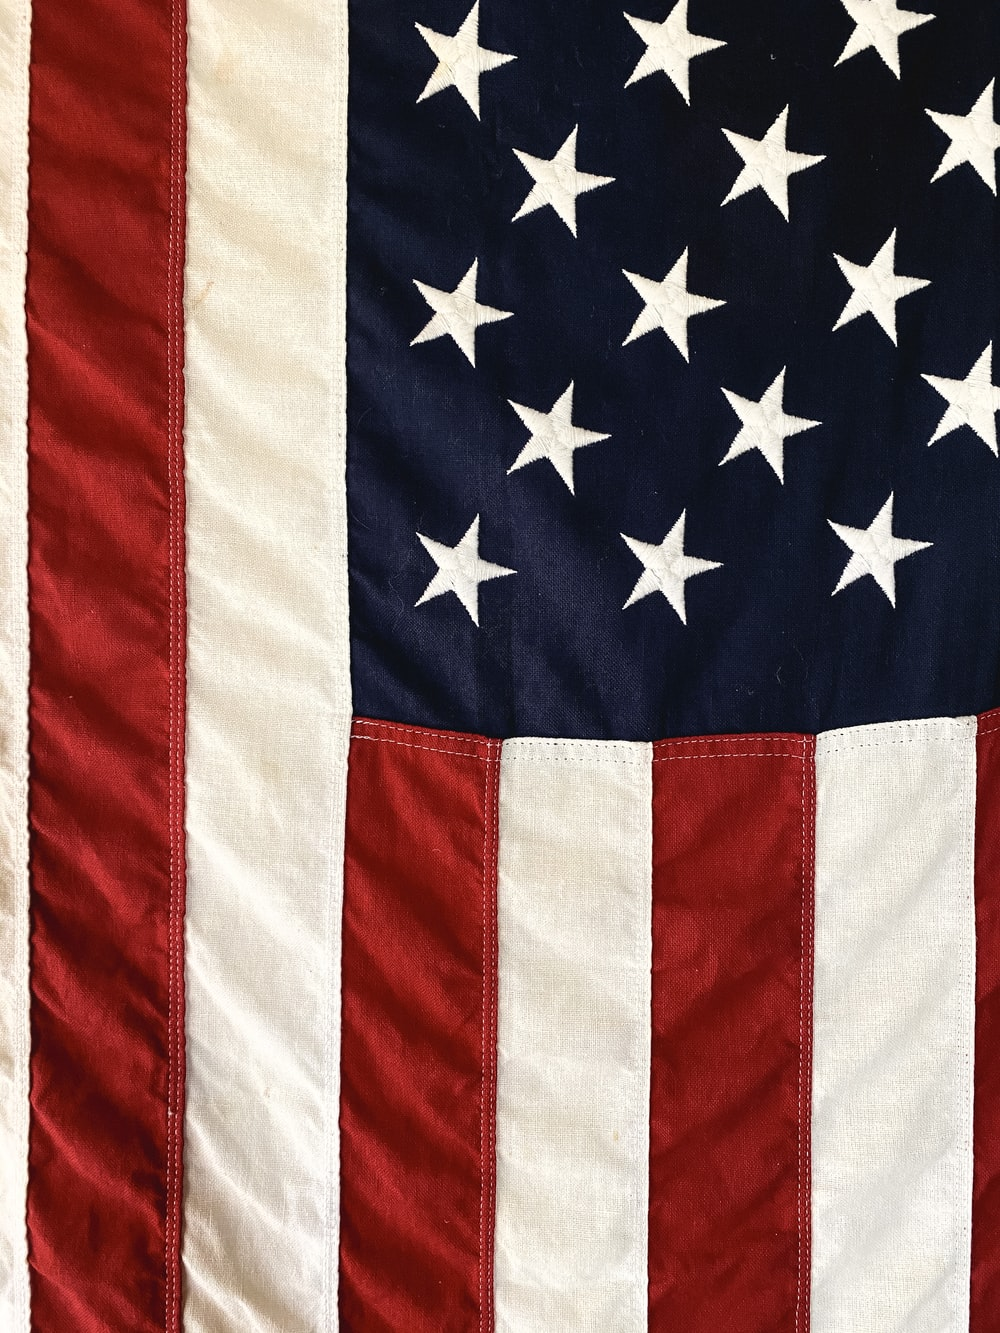 us a flag on red textile